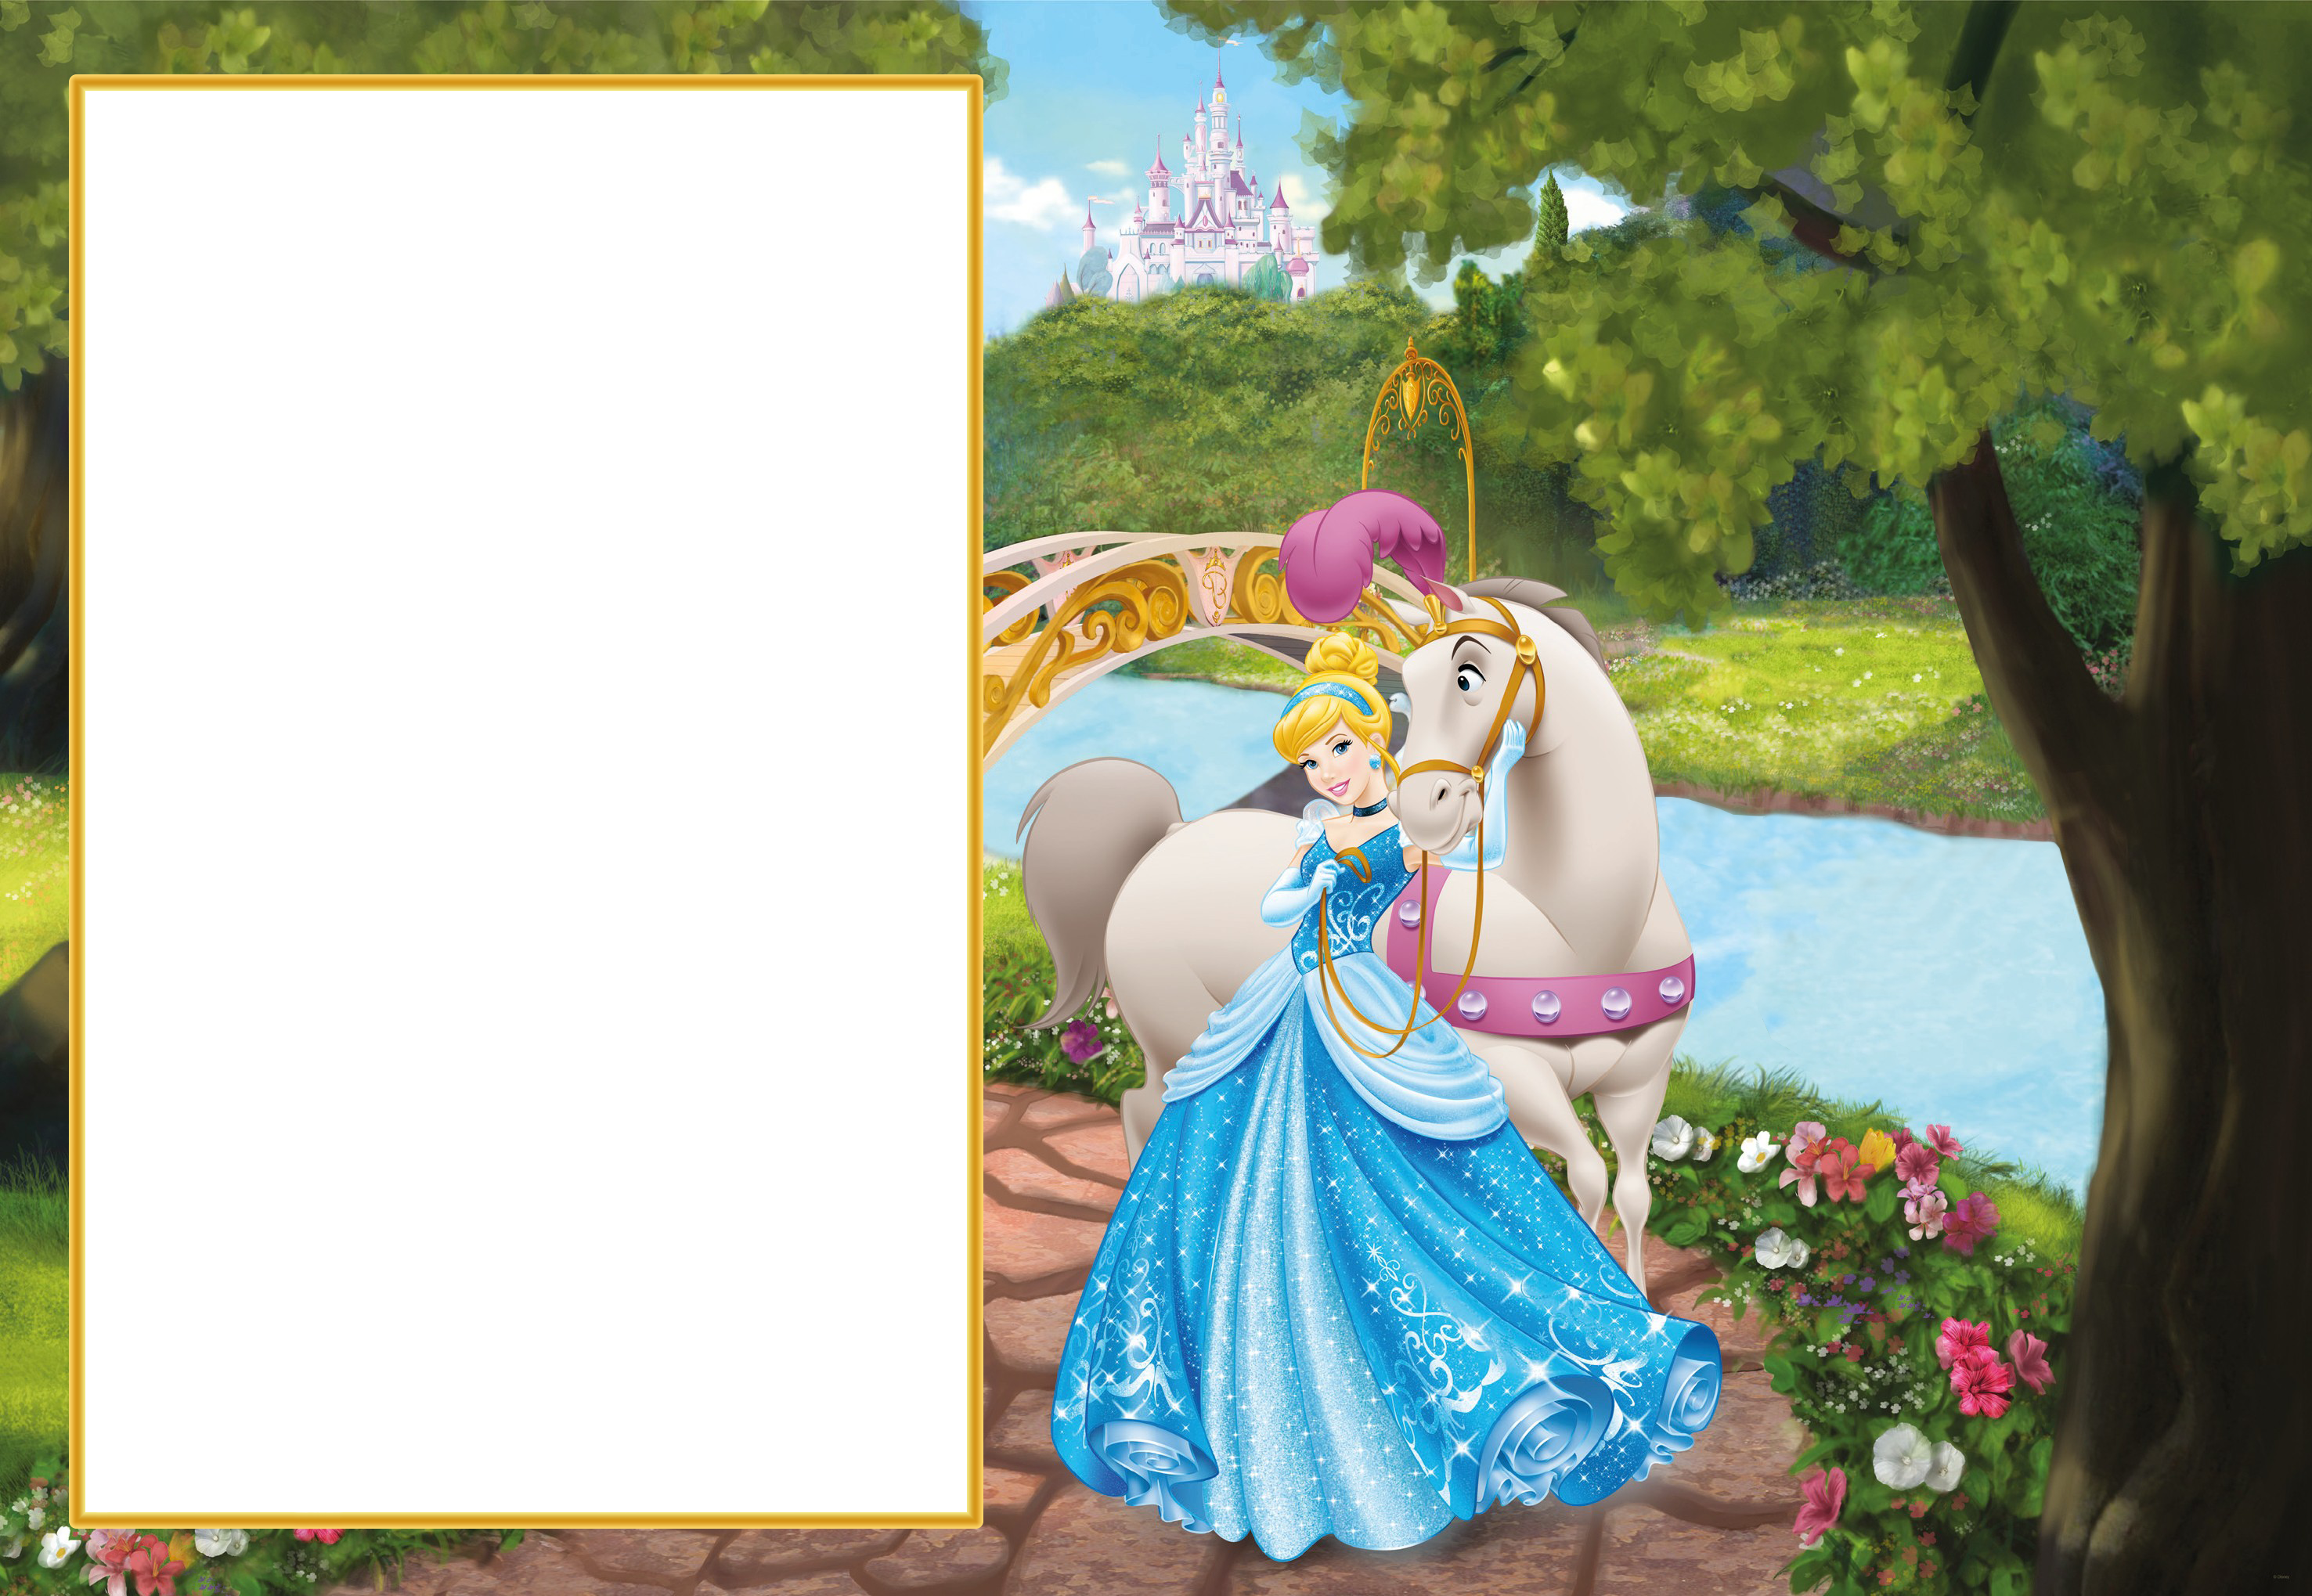 Princess cinderella transparent png. Photography clipart cute